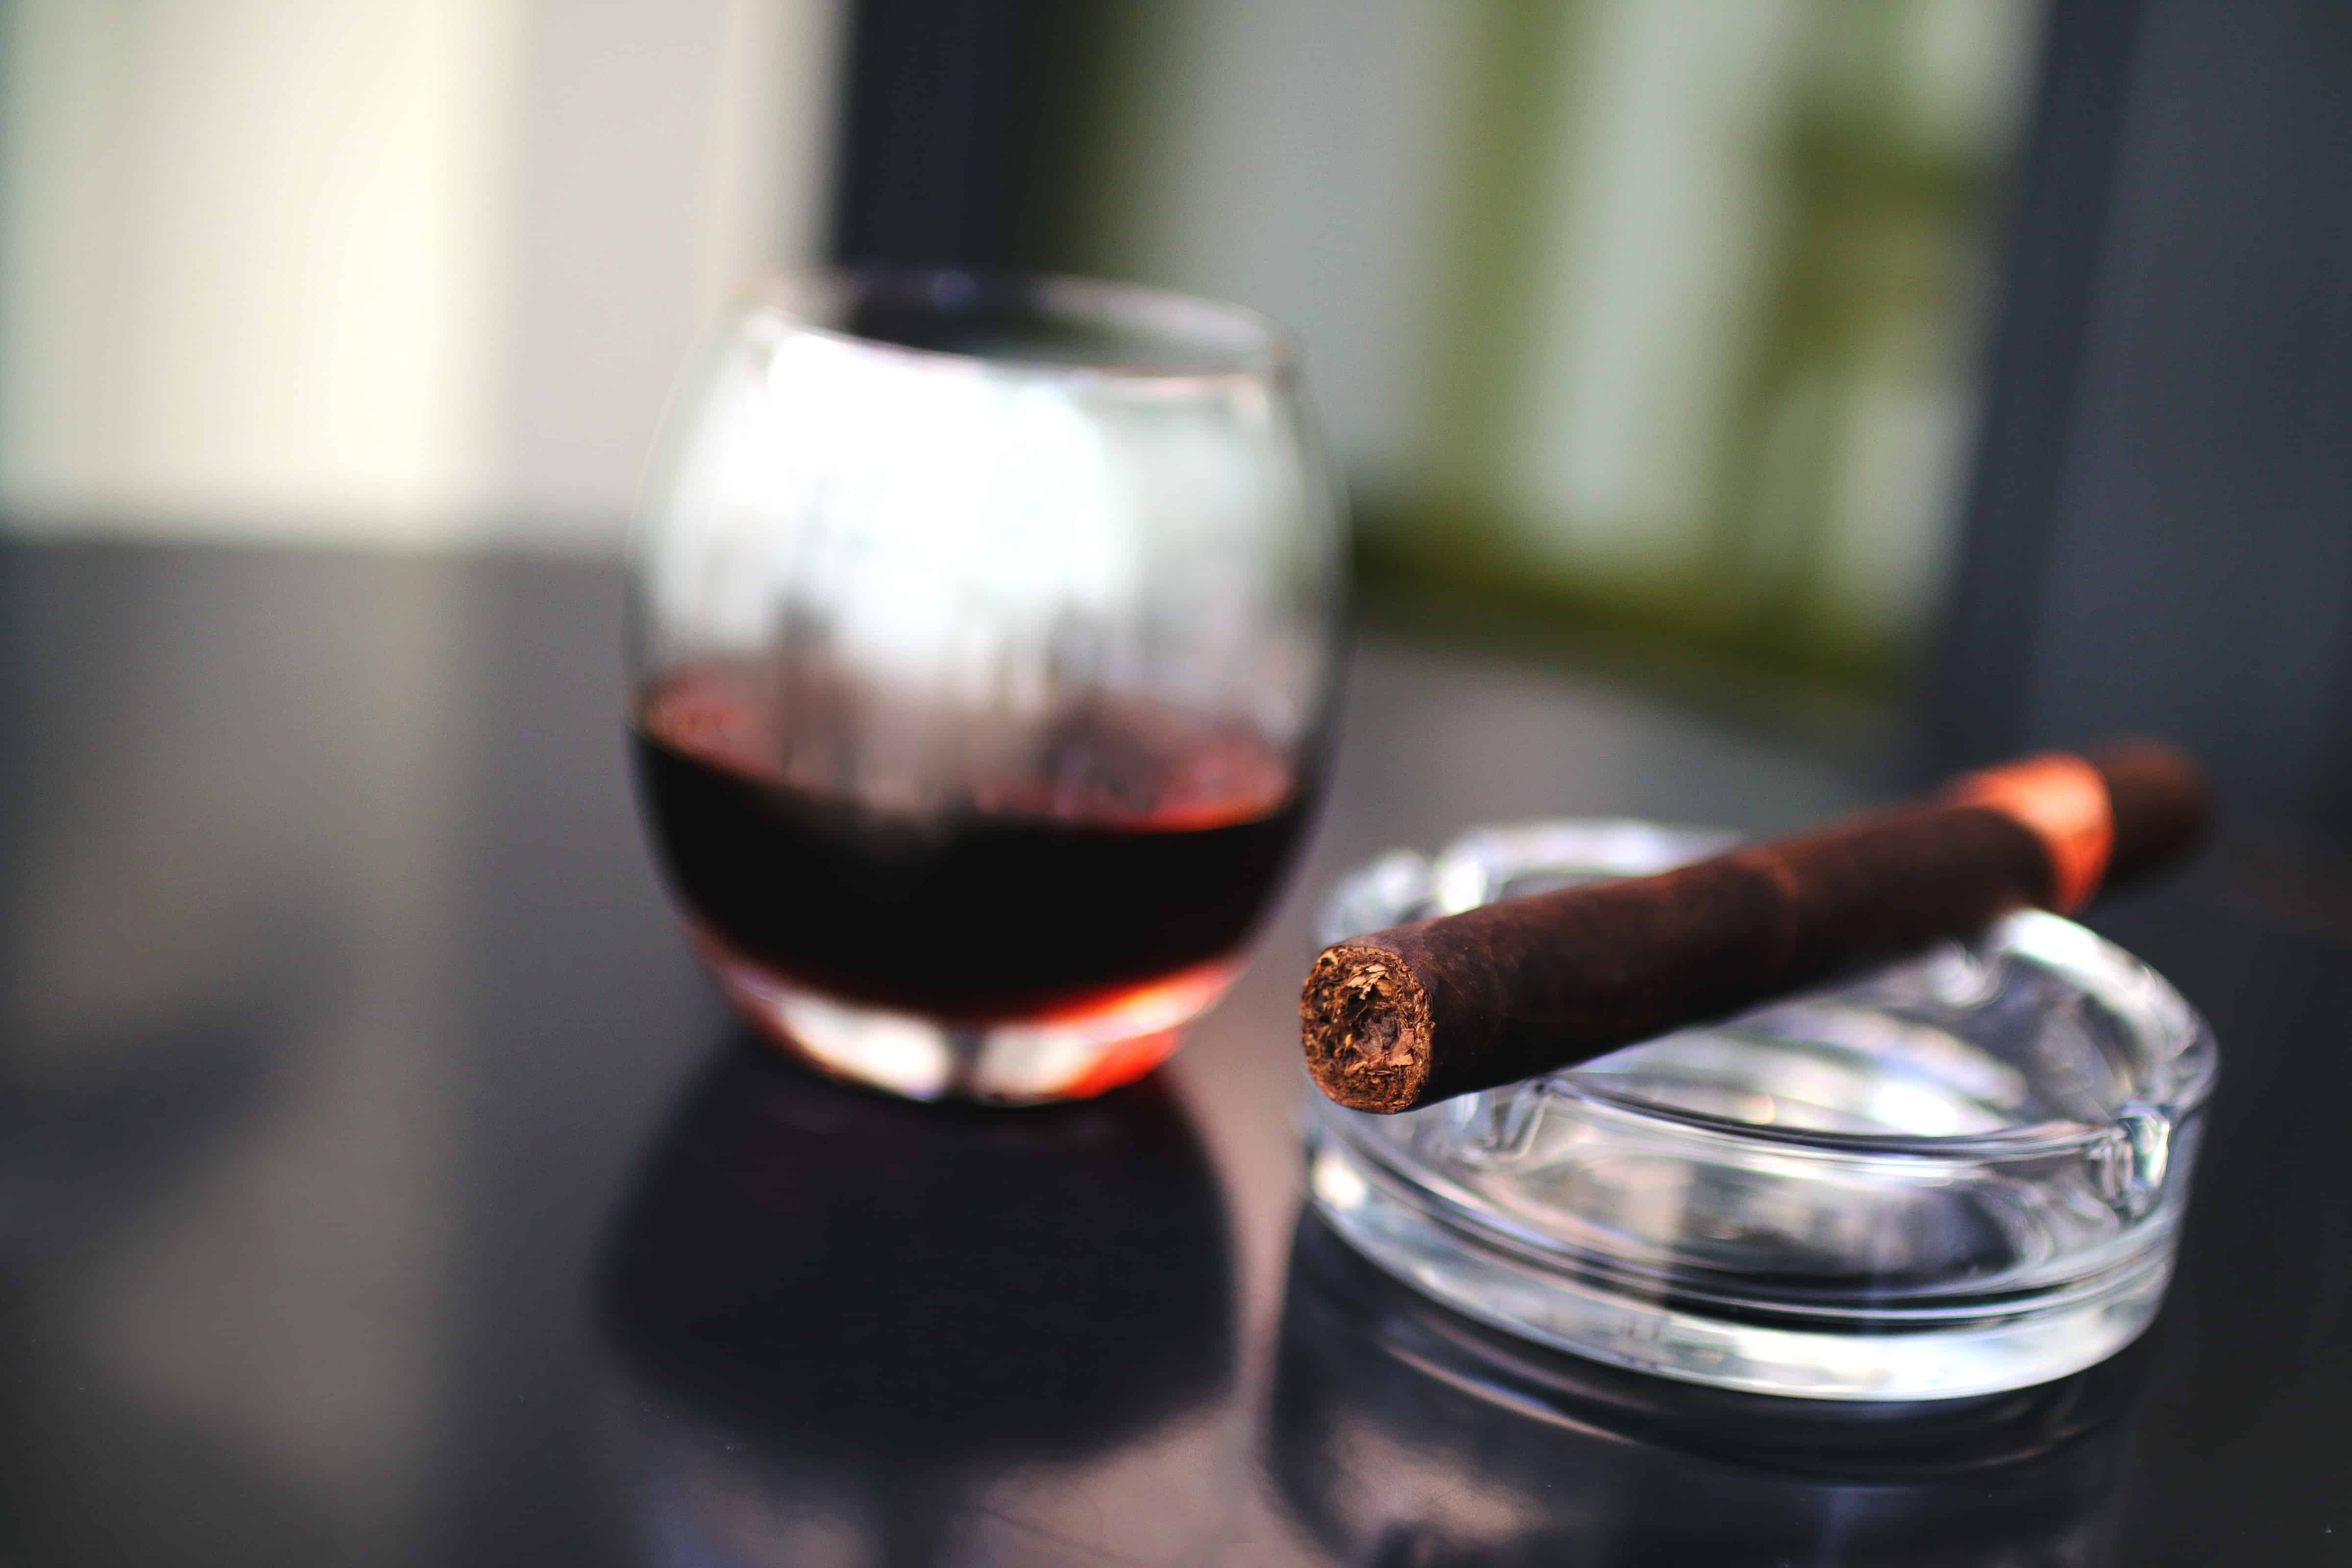 Best Cigar Lounges and Bars on cigarcutterexpert.com